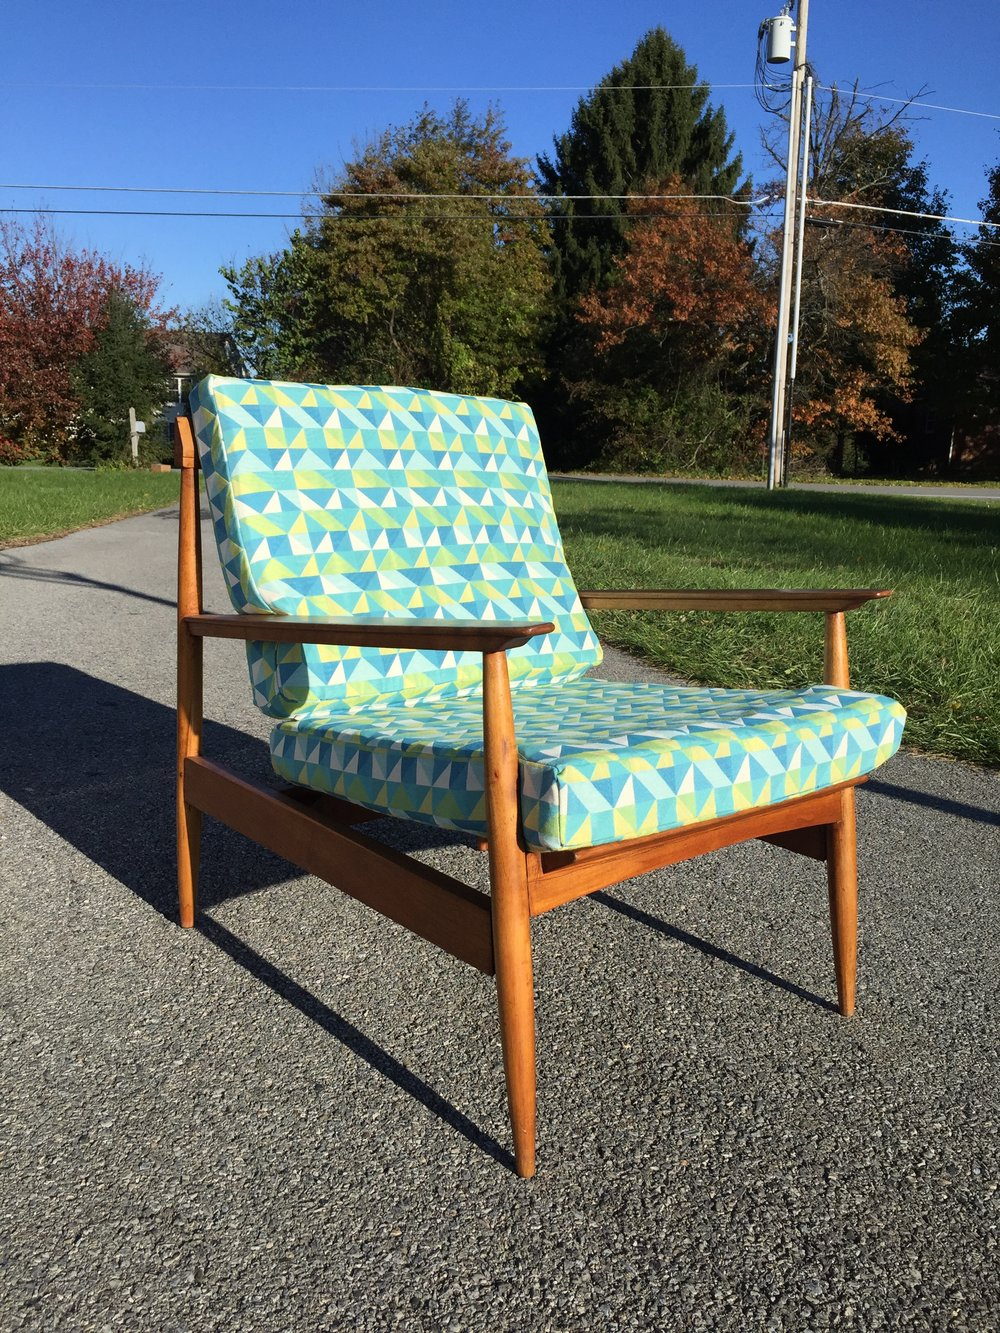 Forgot to show pics of the completed Knoll Antimott chair cushions!  I picked a great geometric indoor outdoor fabric in yellow, white and blue morphing into some green shades. I love it!  This is available!  Instant shipping quotes in my chairish shop.  I can quote some uship guys too.  Reach out!  Delivery in the region too.